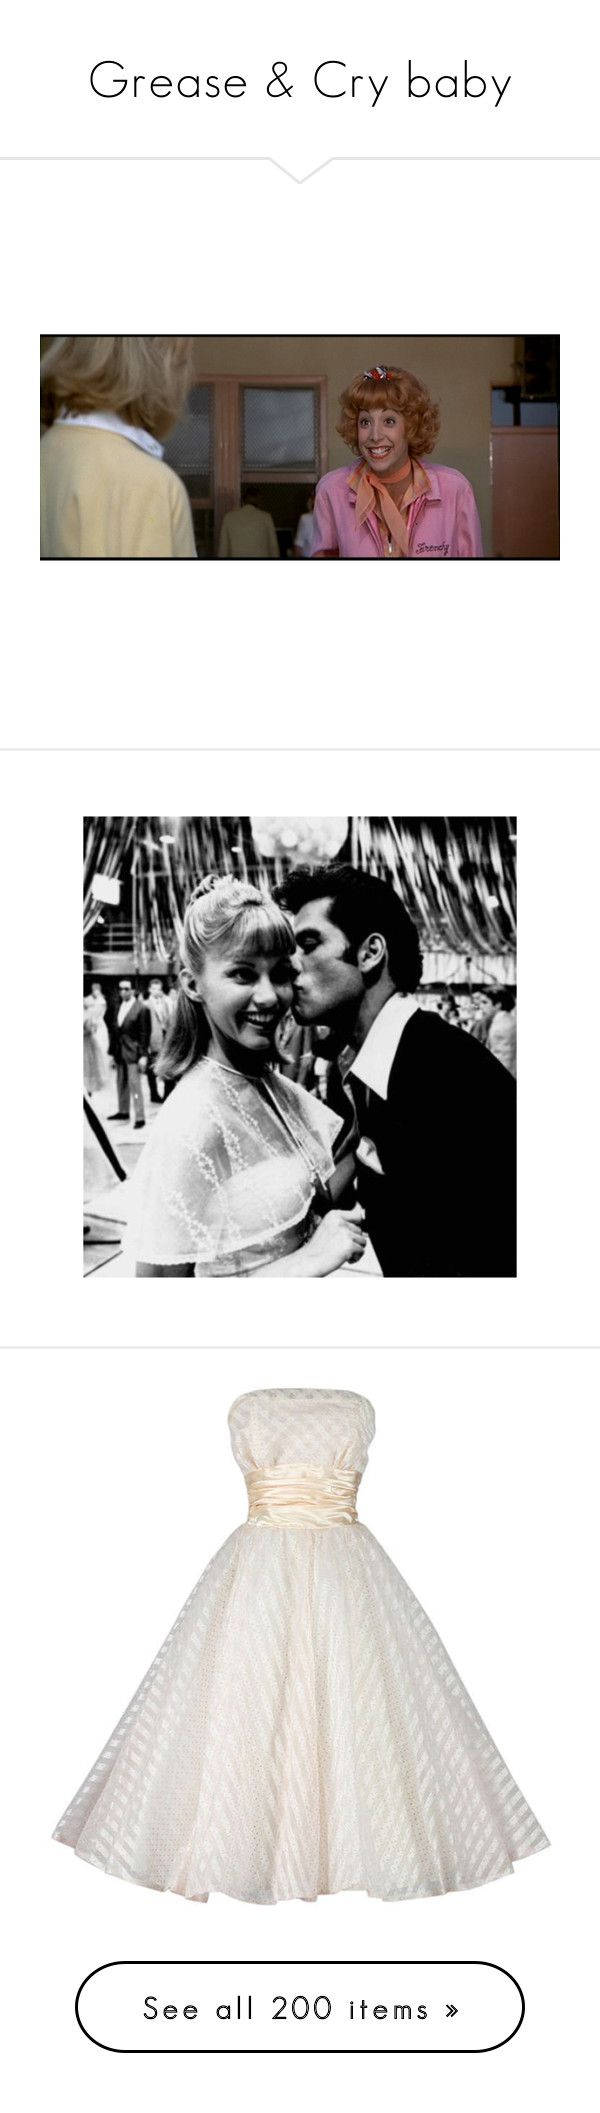 """""""Grease & Cry baby"""" by priscilla12 ❤ liked on Polyvore featuring Creative Co-op, Gianvito Rossi, movie, Grease, Raoul, Monsoon, dress, dannyzuko, grease and backgrounds"""